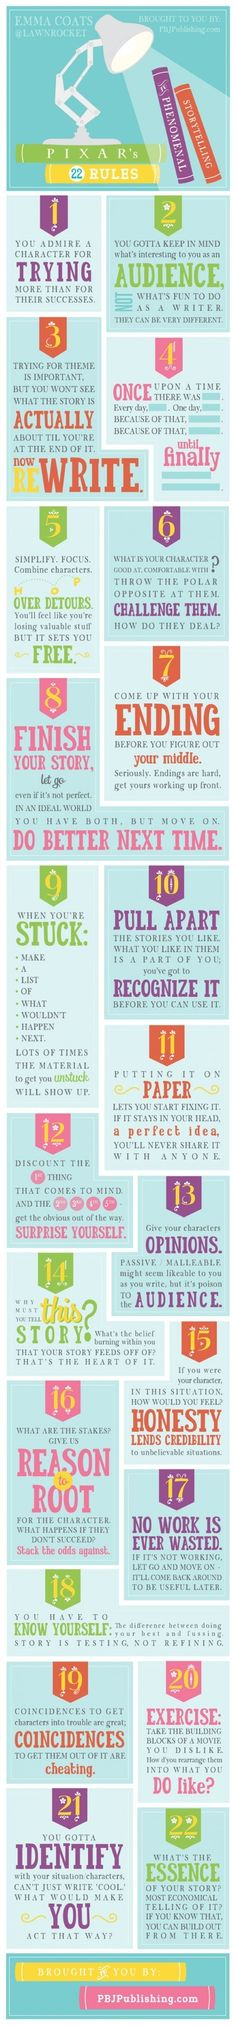 Pixar's 22 Rules to Phenomenal Storytelling [AS an INFOGRAPHIC] « Transmedia Camp 101